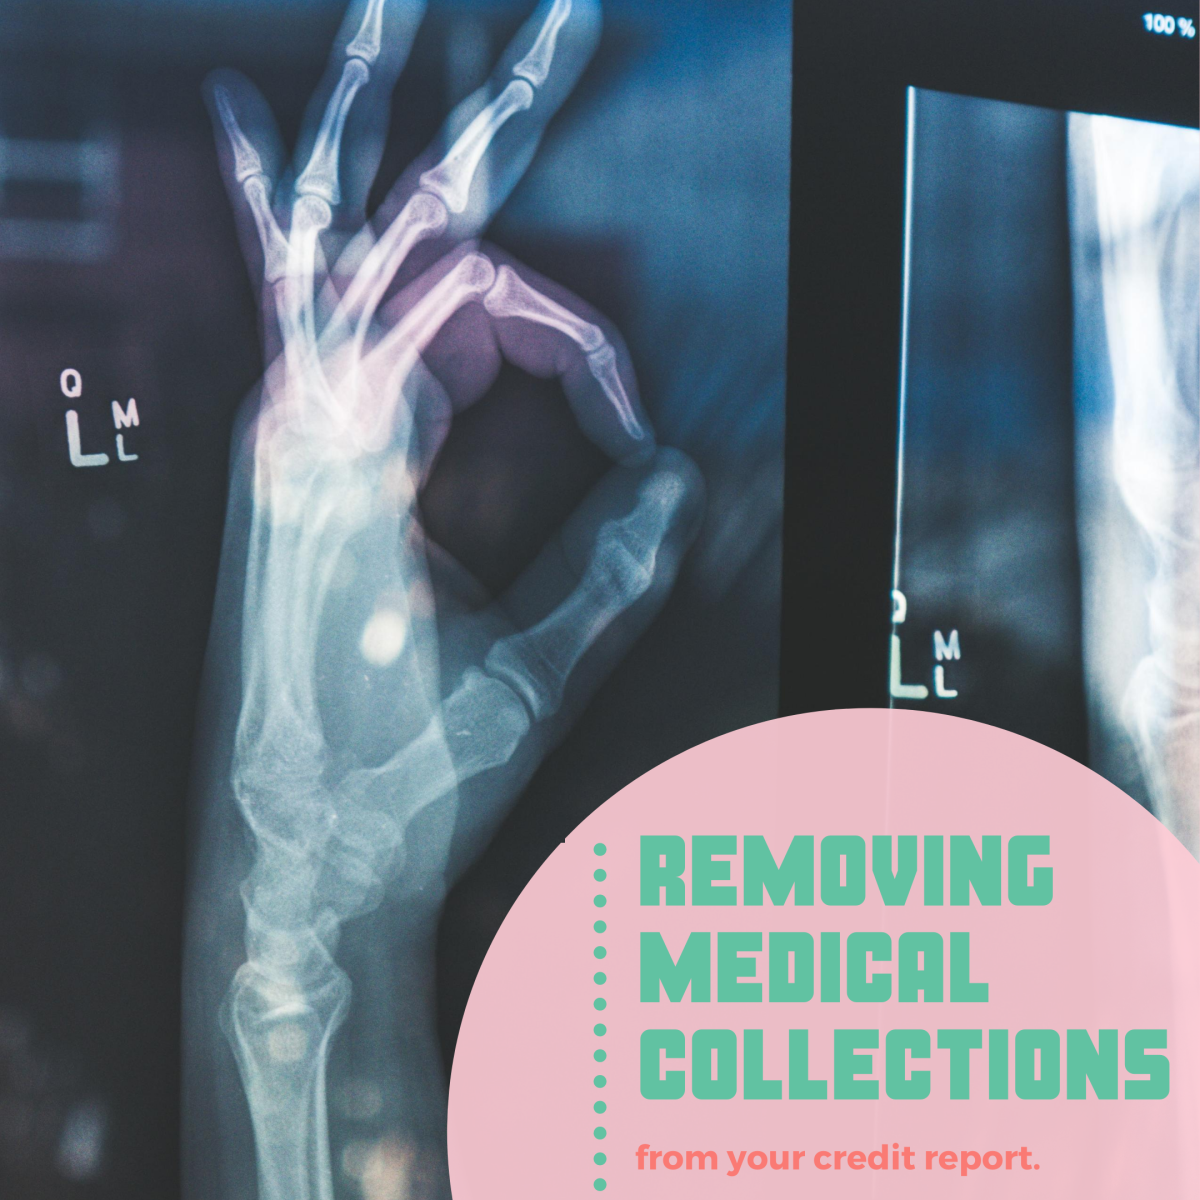 How do I remove medical collections?